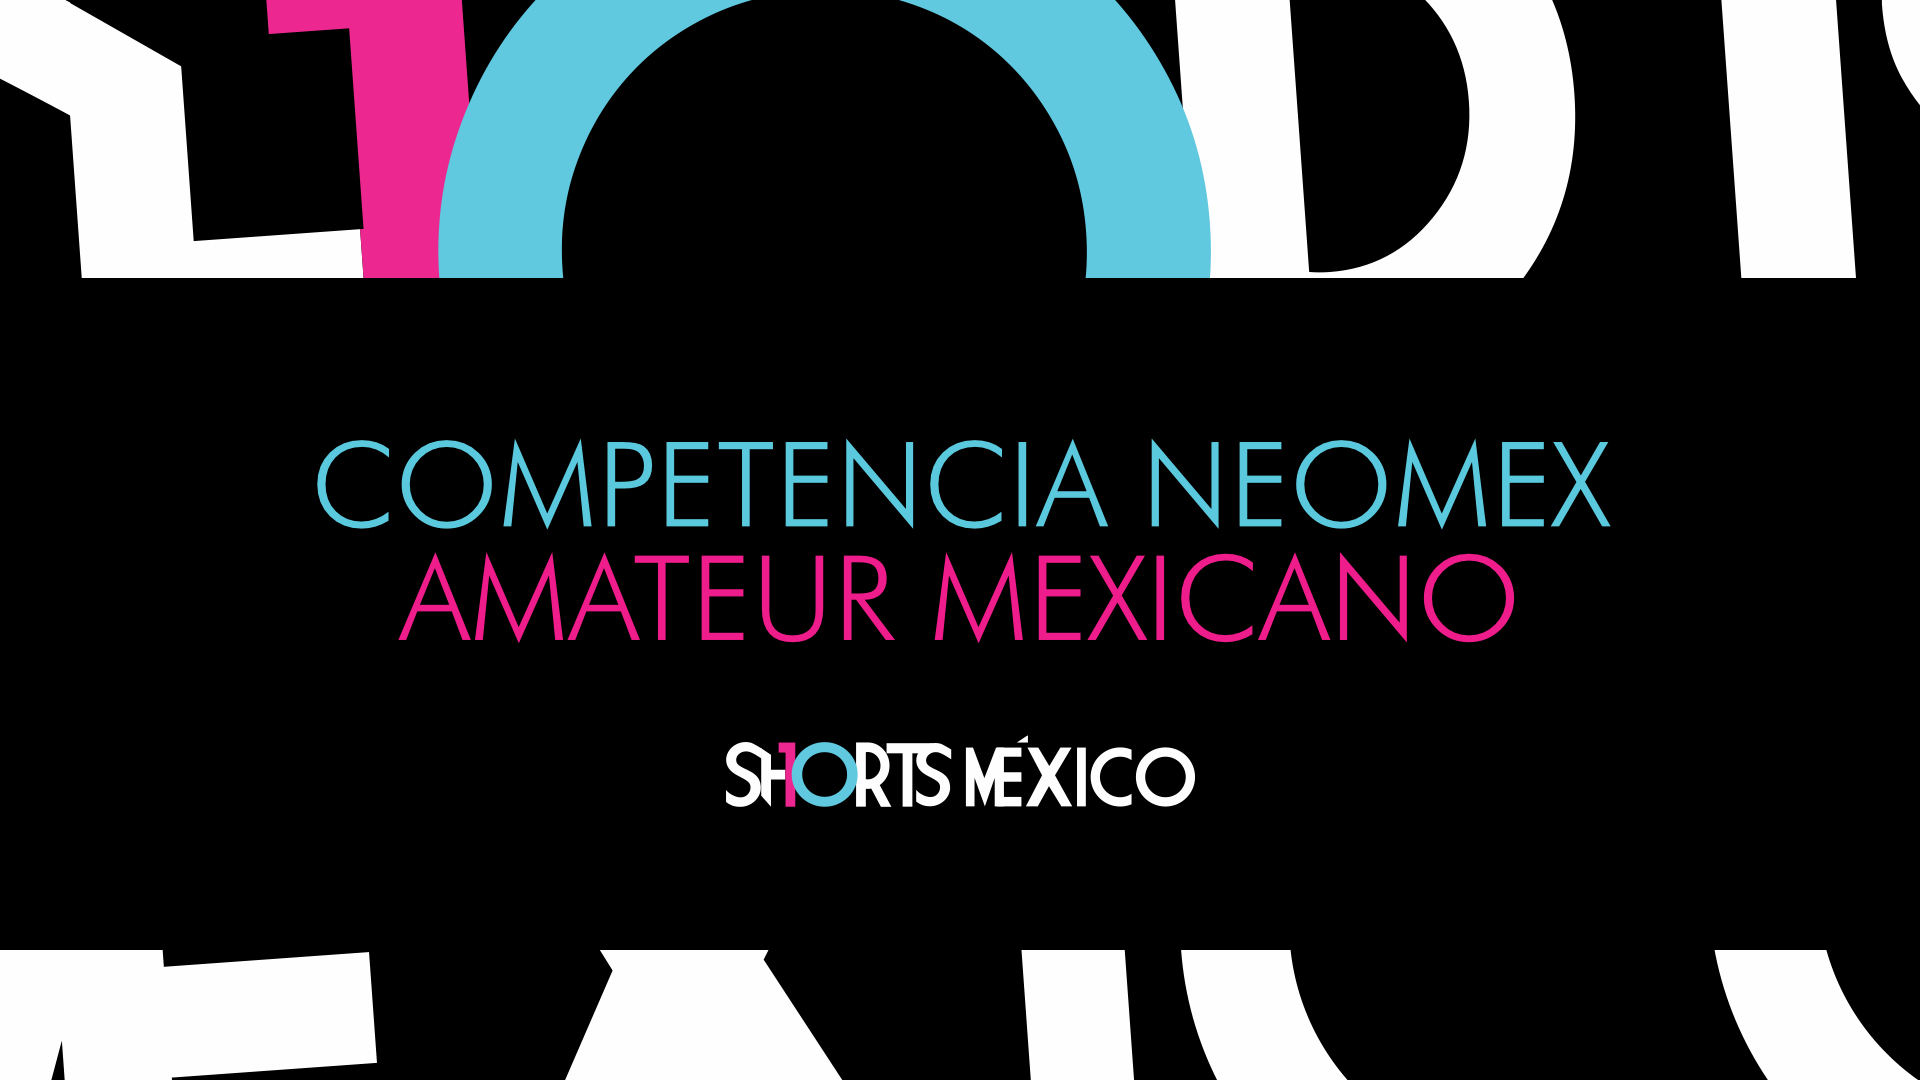 ShortsMexicoCompetencias.002